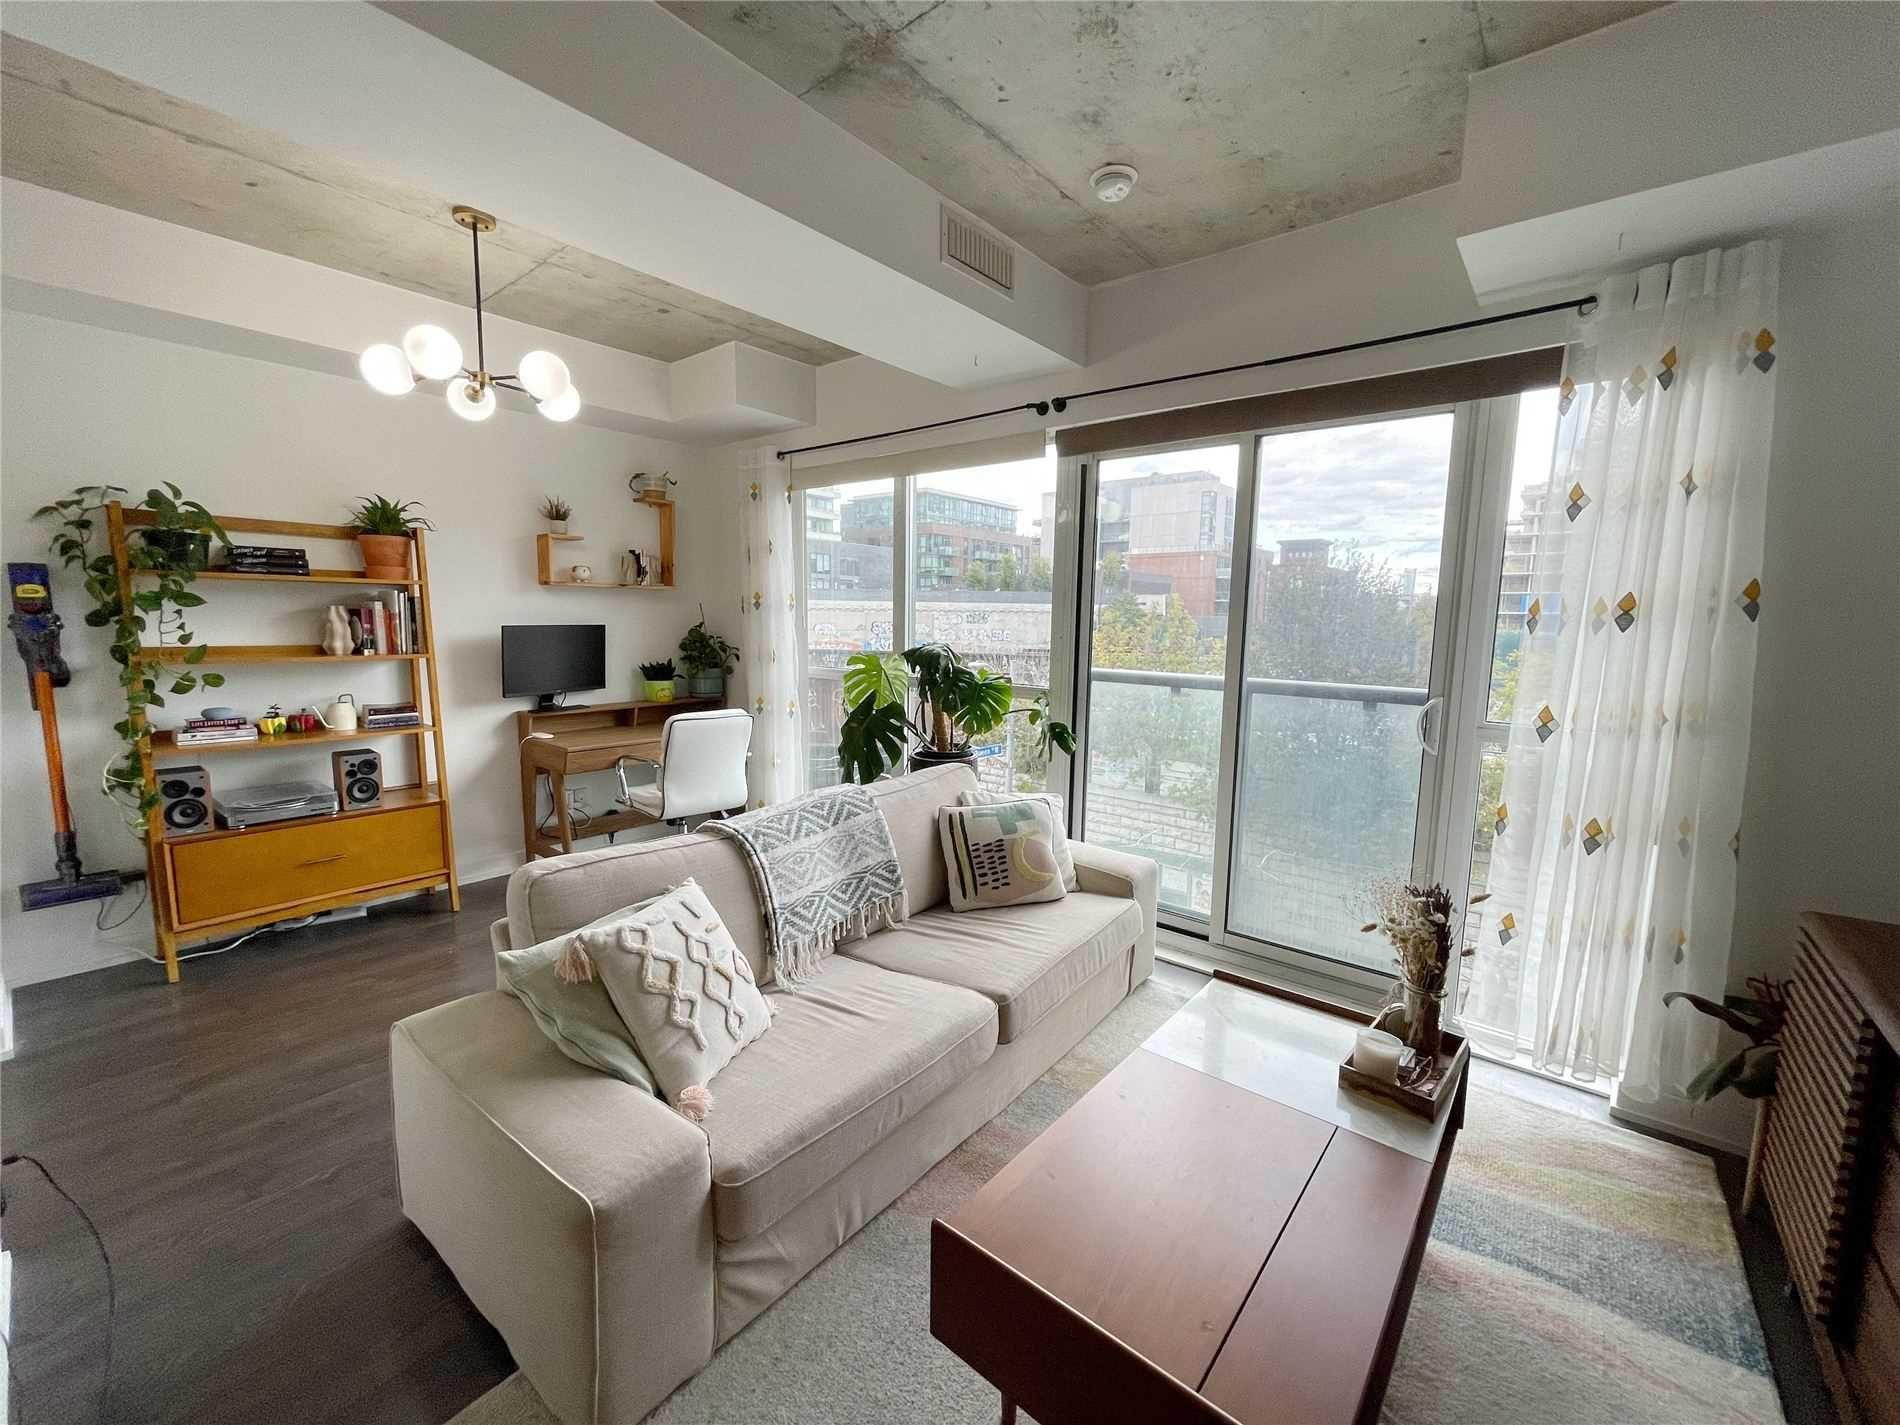 1205 Queen St W, unit 310 for rent in Parkdale - image #2